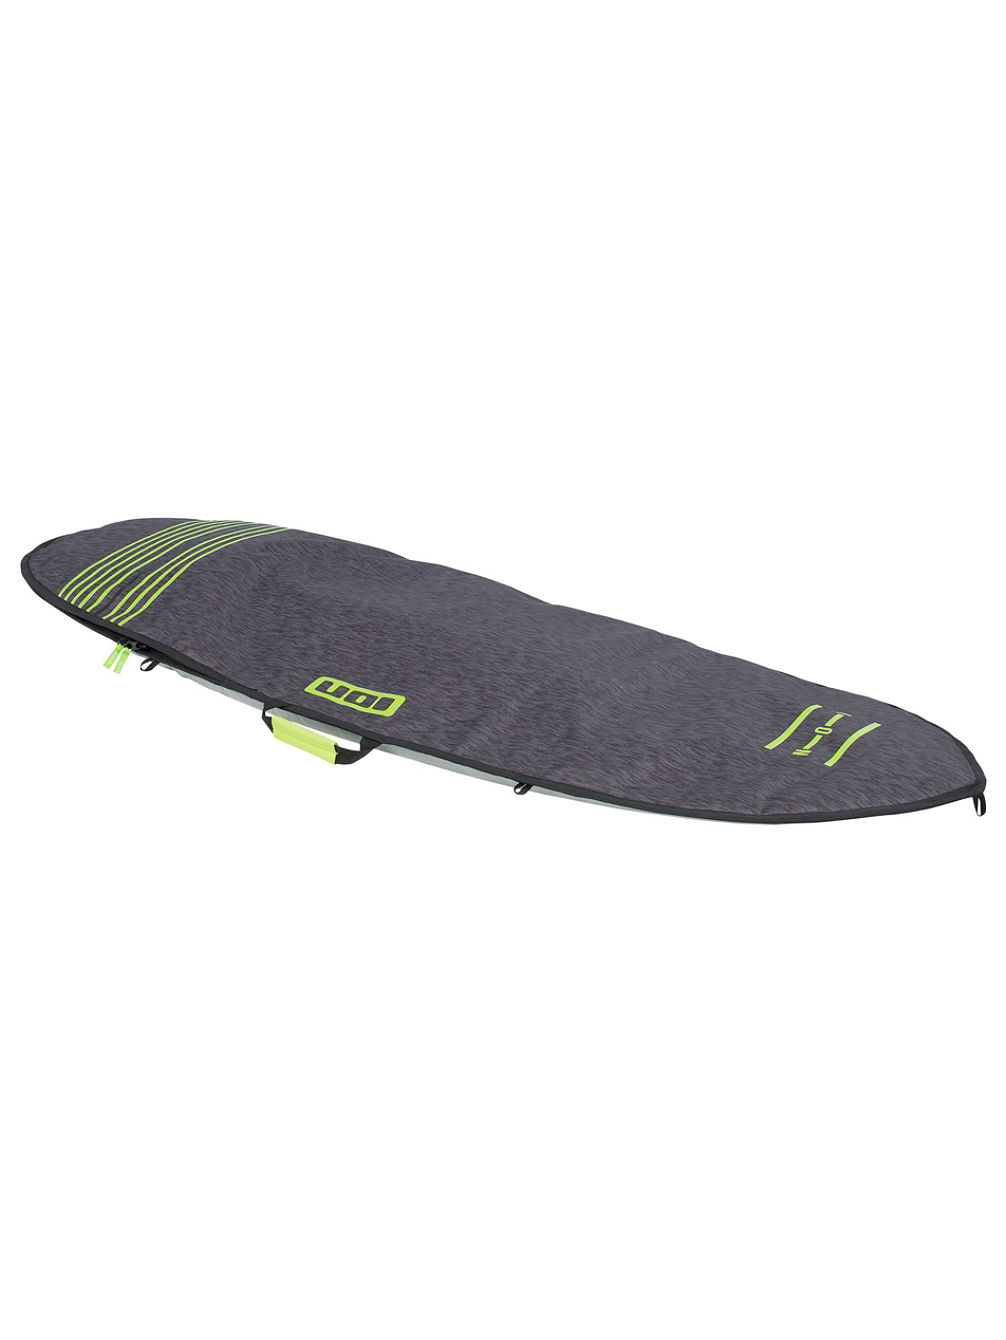 Surf Core 6'10 Surfboard Bag